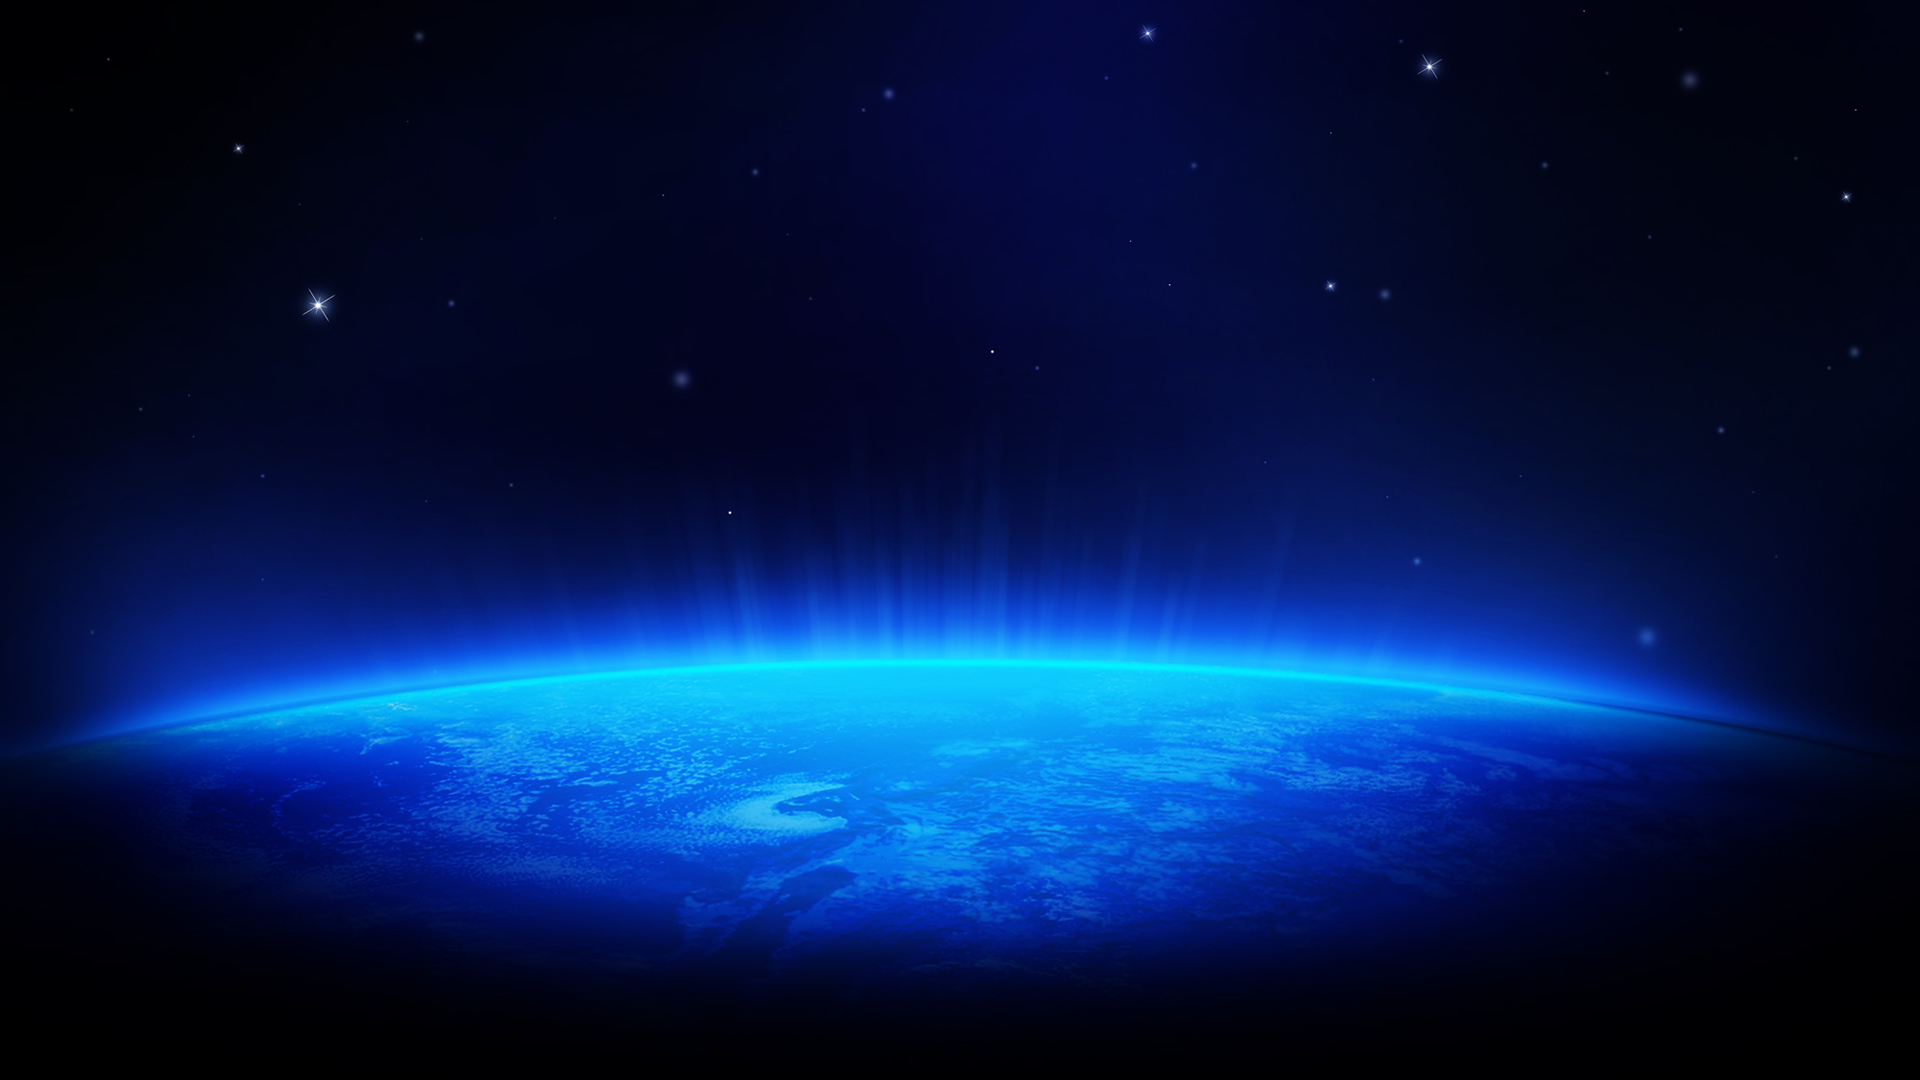 Blue Wallpaper Hd 1080p Blue space hd wallpaper 1920x1080